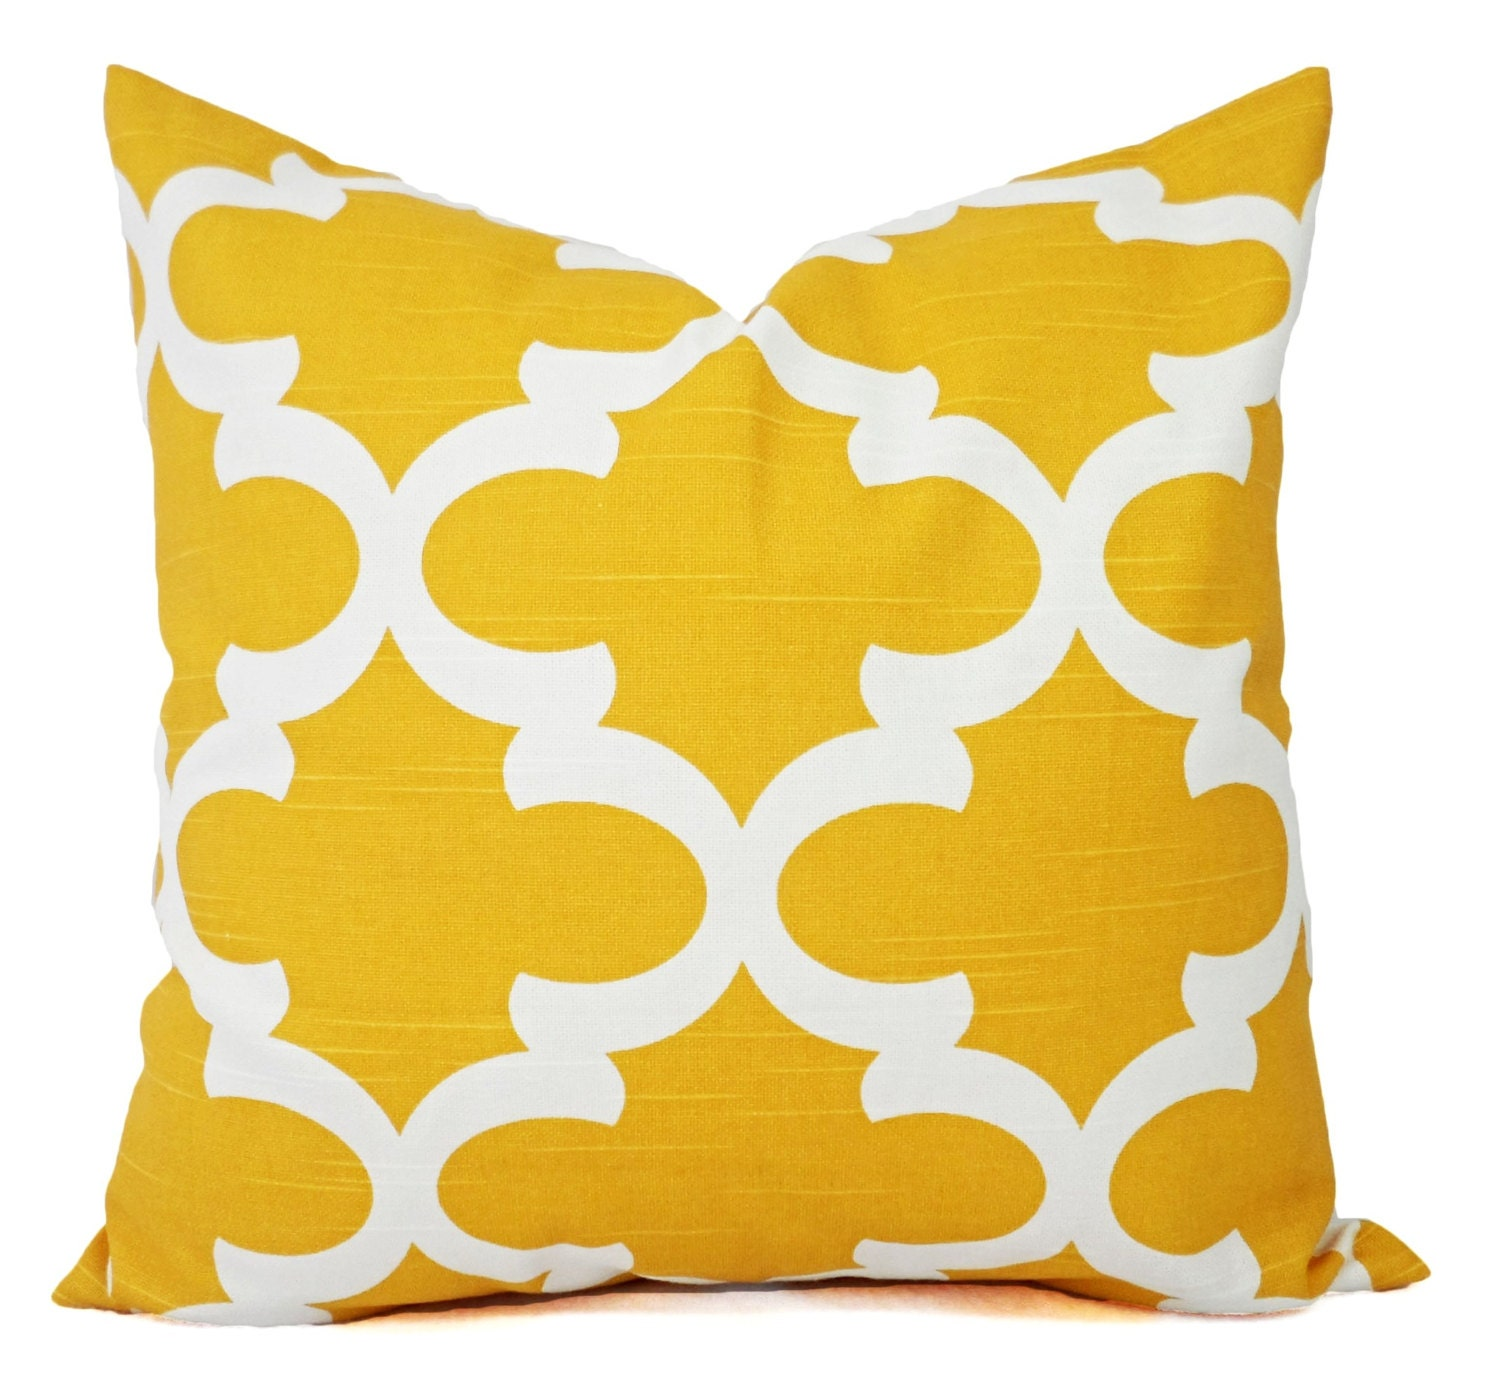 Yellow Decorative Pillows Two Yellow Throw Pillow Covers